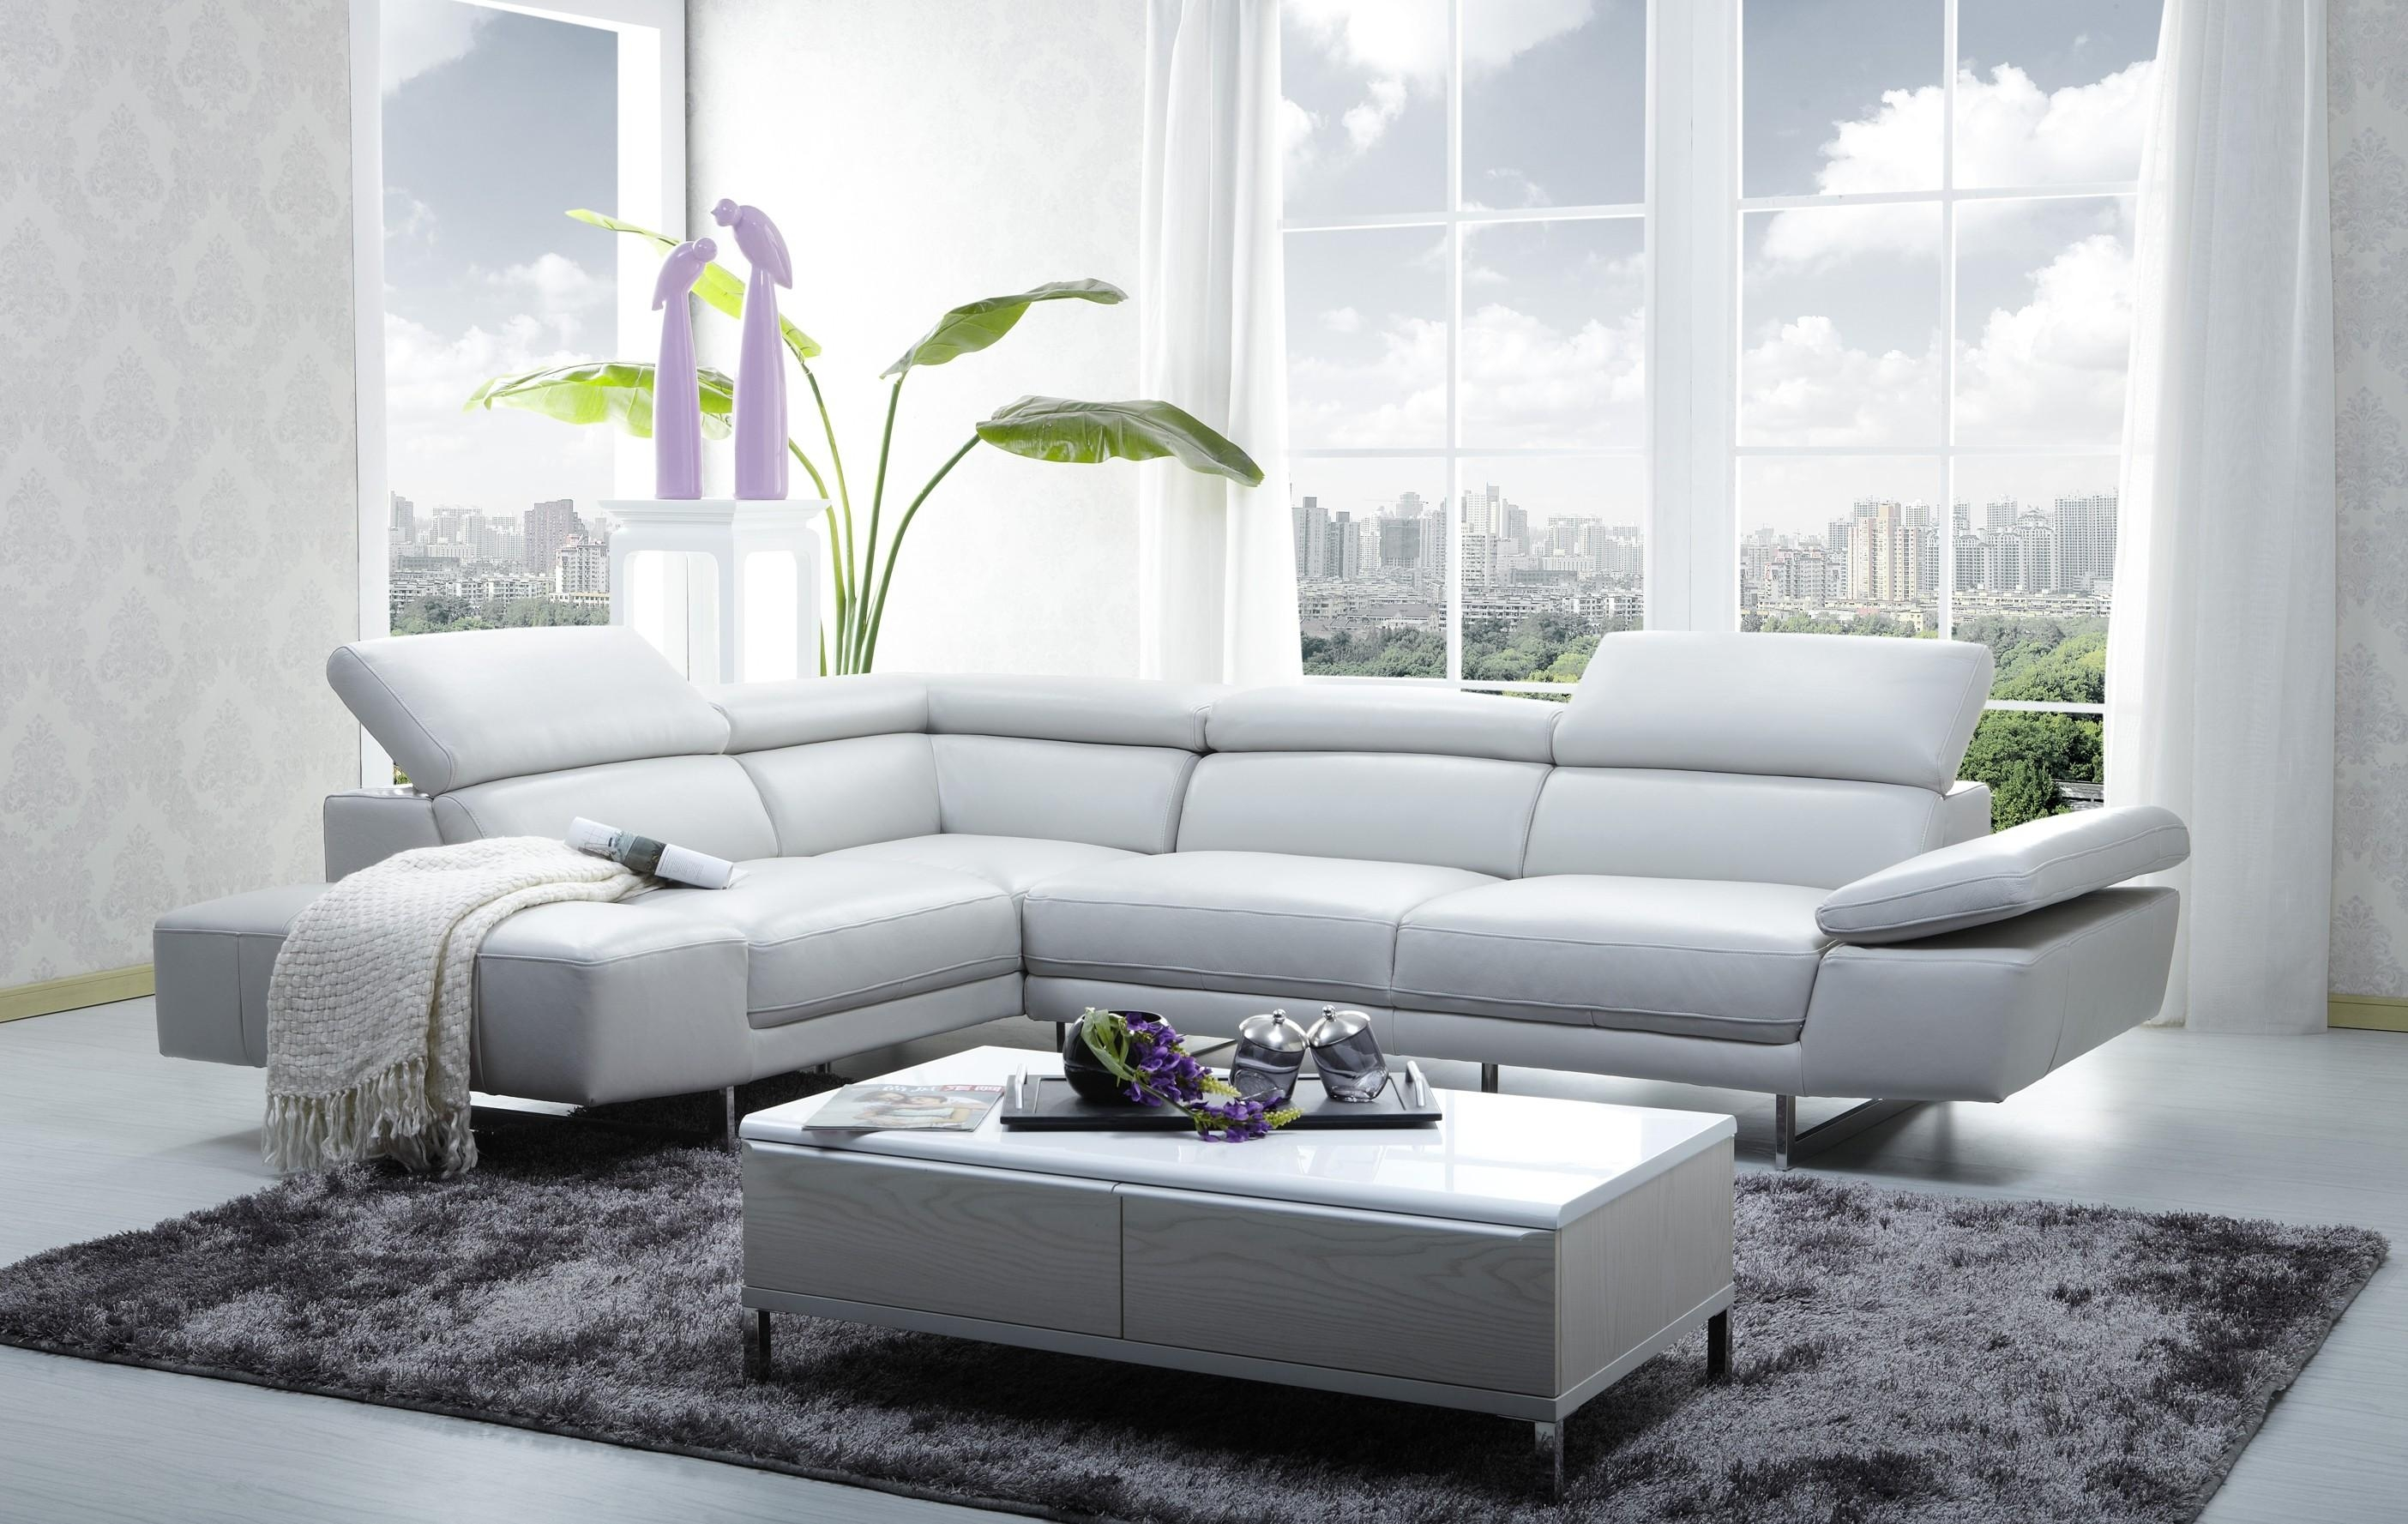 1717 Italian Leather Modern Sectional Sofa within Modern Sofas